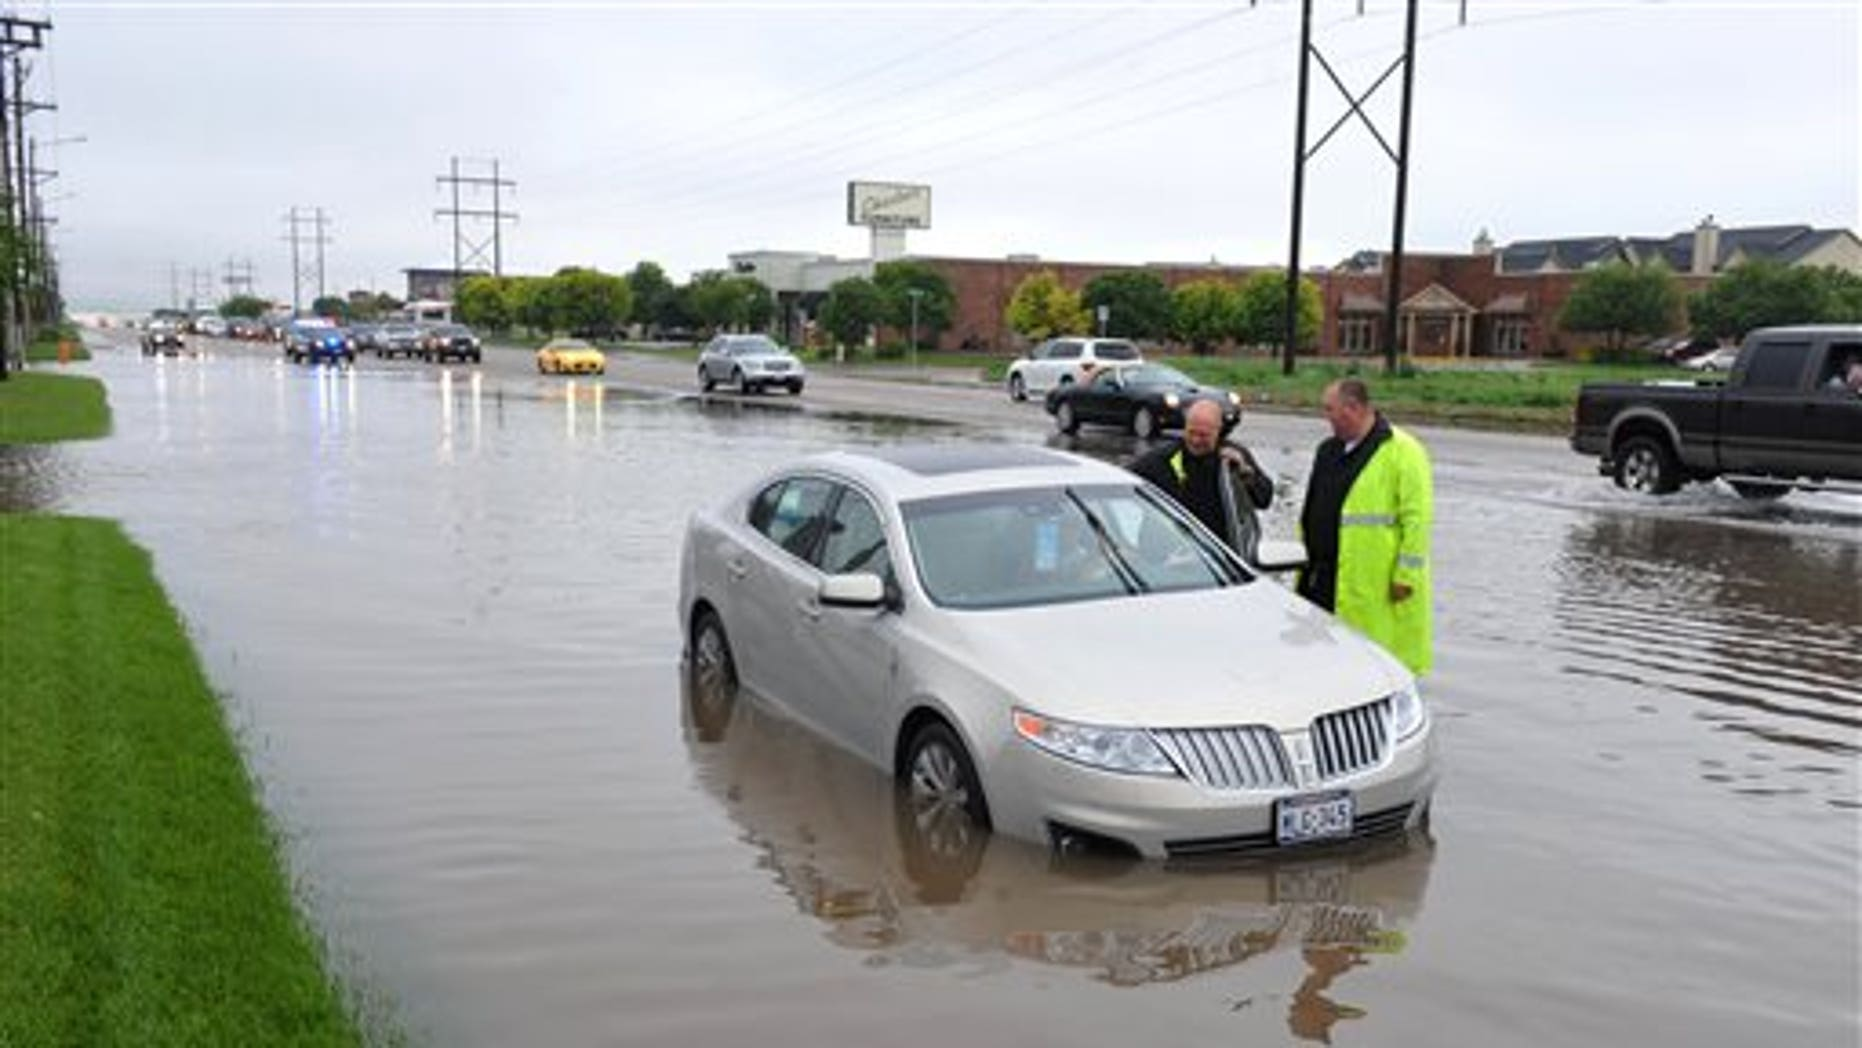 May 23, 2015: Amarillo, Texas, police officers make an emergency water rescue of a stranded motorist after heavy rain showers flood much of the city.